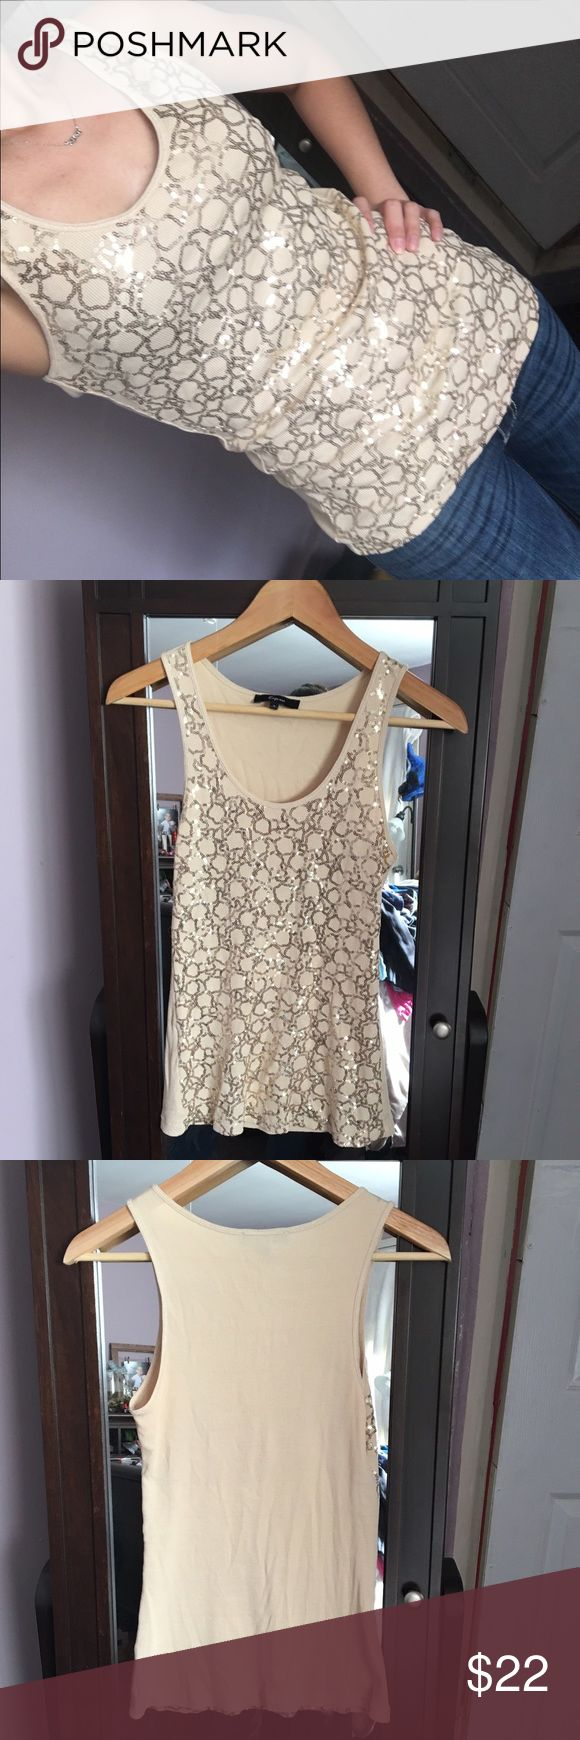 Express gold sequin tank top Express gold sequin tank top. Cute and flirty for a day out. Sz S true to sz. No damage great condition. Feel free to message me with any questions. Any reasonable offers is accepted Express Tops Tank Tops